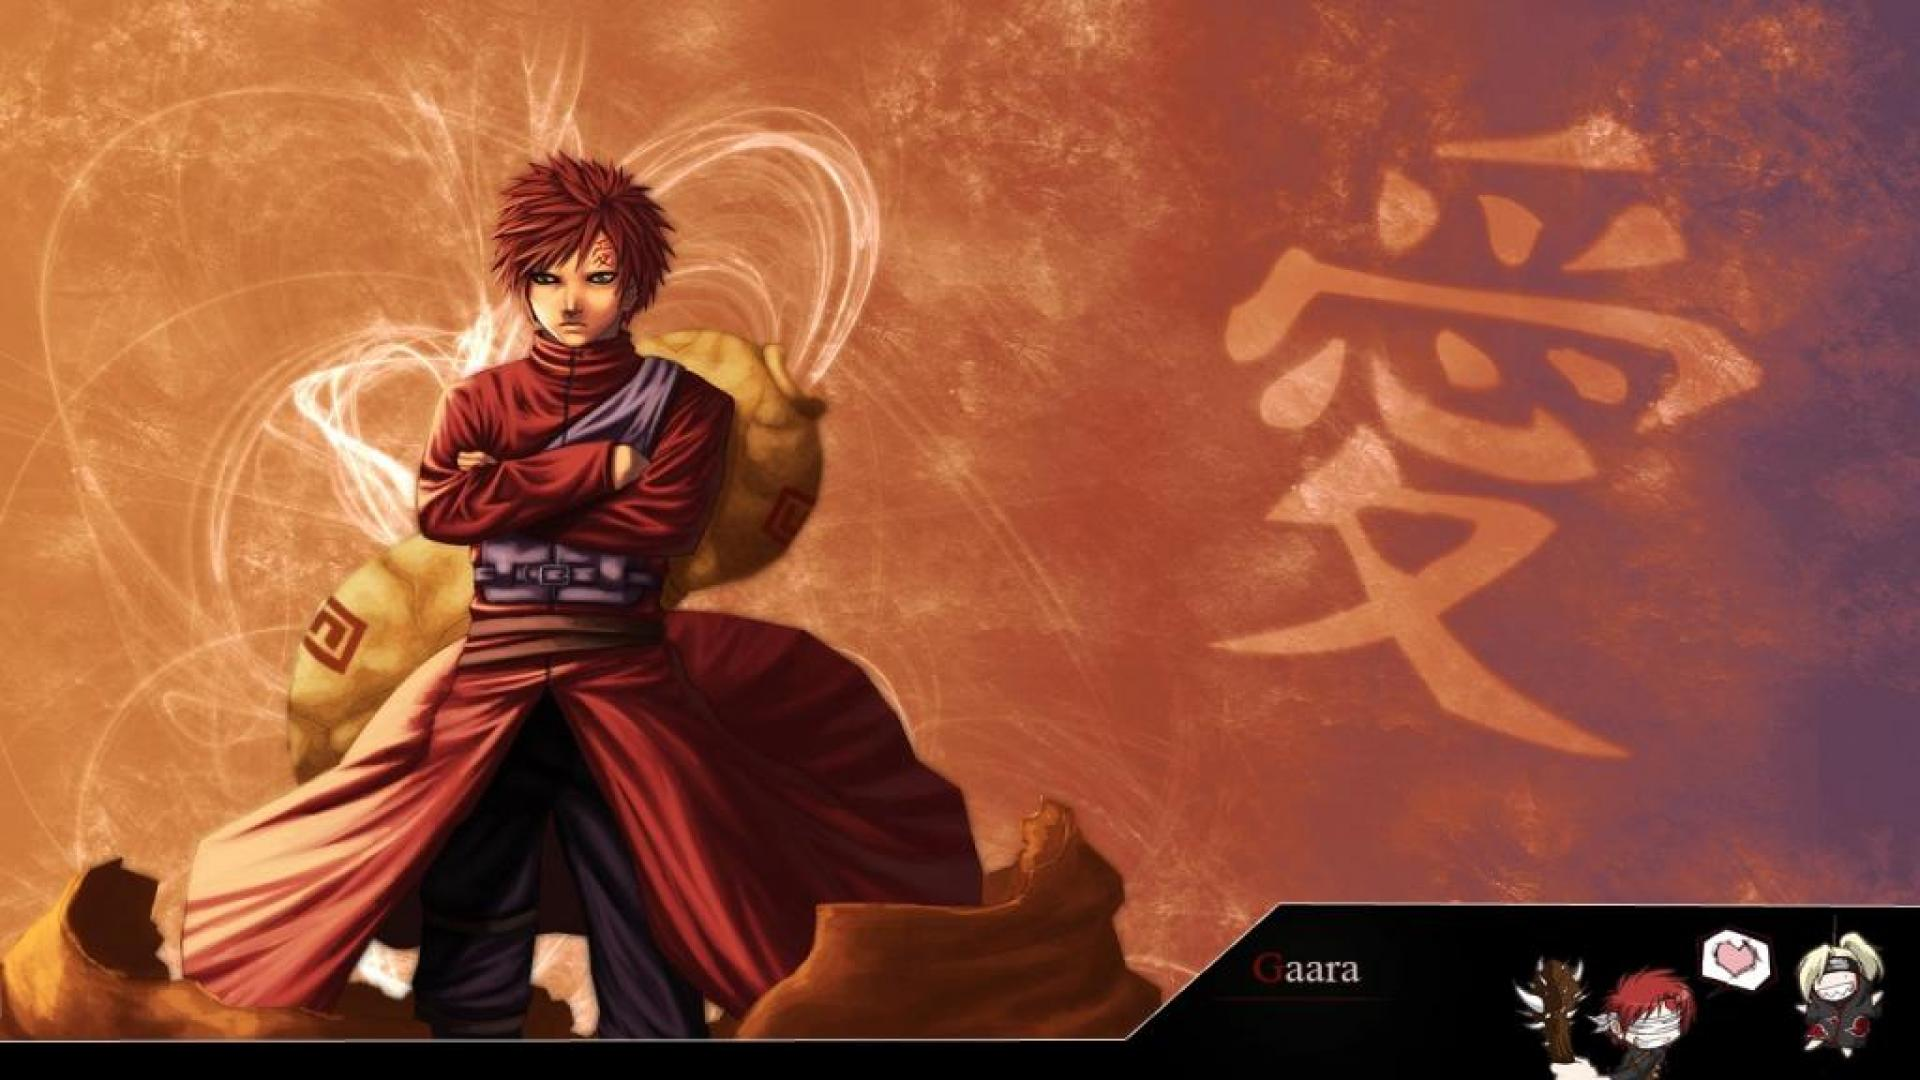 GAARA WALLPAPER   6639   HD Wallpapers   [WallpapersInHQcom] 1920x1080